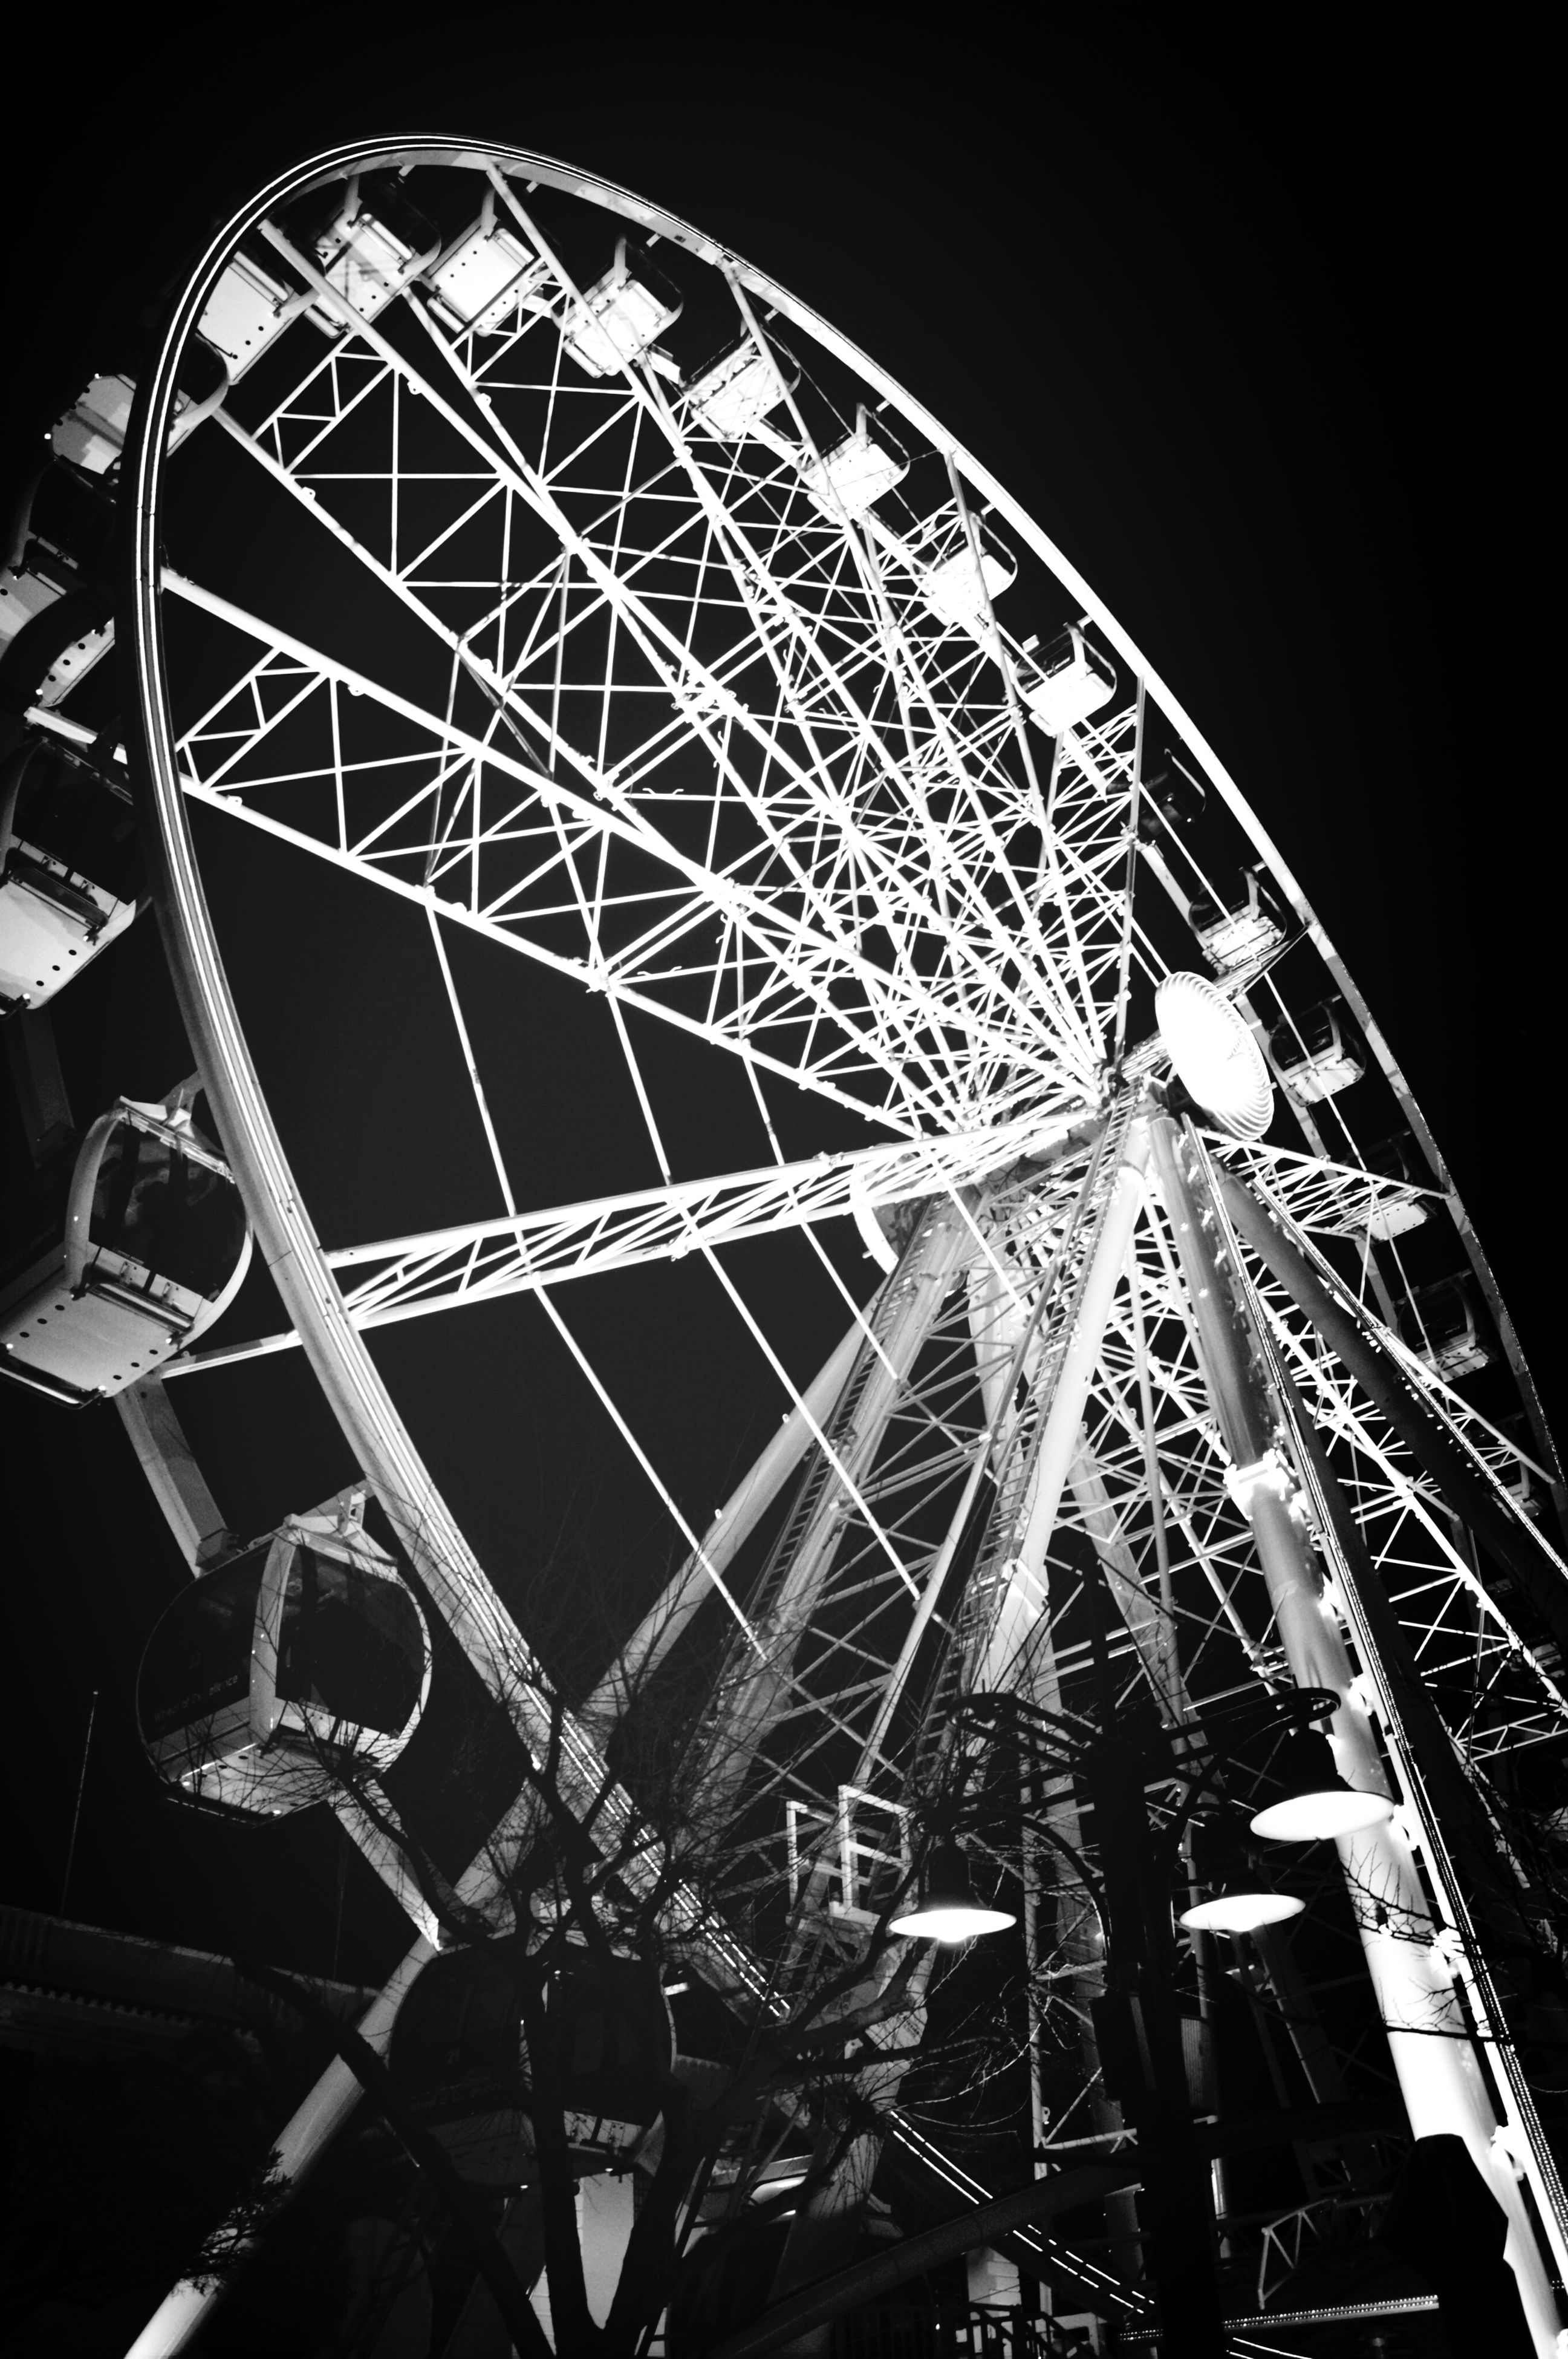 ferris wheel, low angle view, amusement park ride, amusement park, arts culture and entertainment, built structure, architecture, night, clear sky, illuminated, sky, metal, building exterior, city, tall - high, no people, outdoors, circle, travel destinations, capital cities